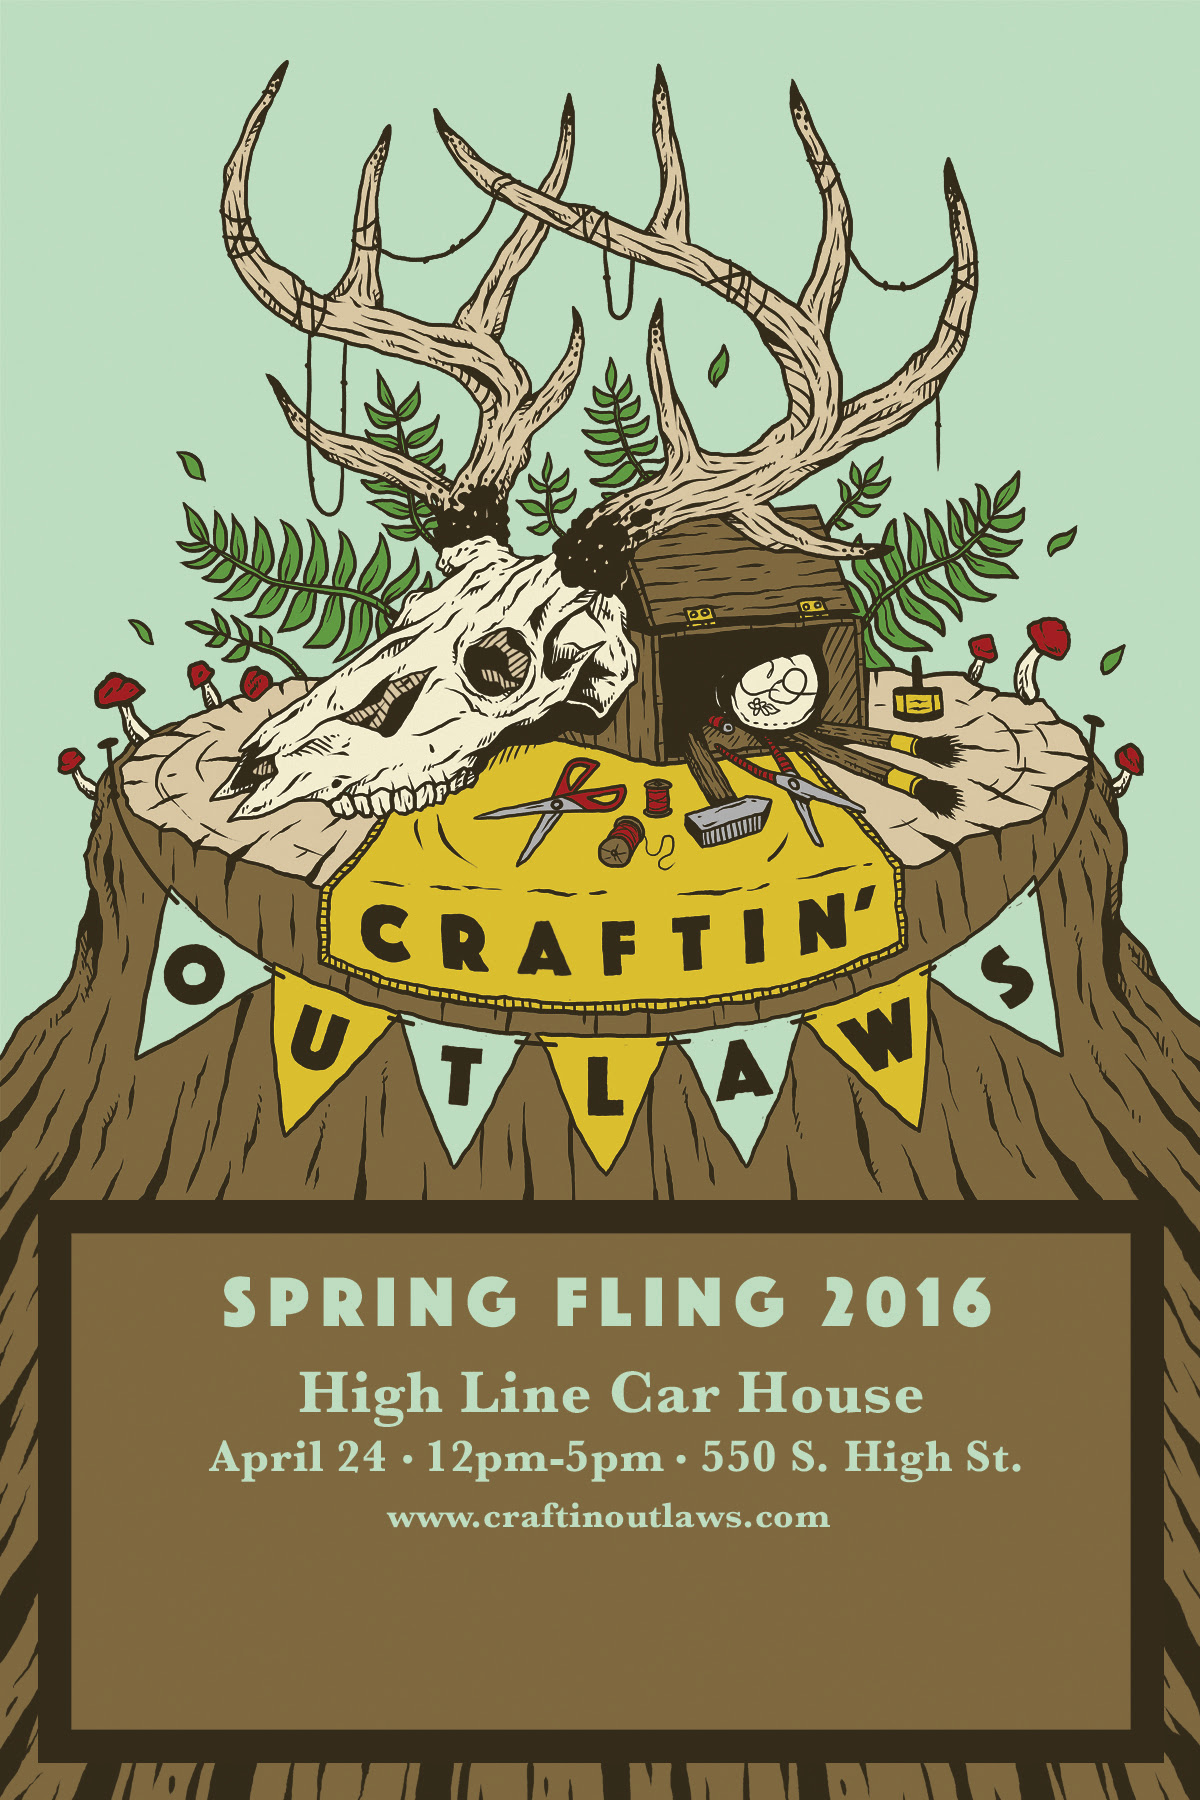 If you find yourself in the greater Columbus area on Sunday, April 24th, come on down and hang out at the Craftin' Outlaws 2016 Spring Fling show! The High Line Car House is a rad little spot, and will be filled with an eclectic array of artisan goods -- including mine! Swing by and say hello! It is FREE to enter, thus saving you money when you decide to purchase one of my new pieces (really, truly -- your life will improve greatly after purchasing one of my pieces). I will have several pieces for sale, and a few new surprises. There will be a full bar, so your social tension can be minimized with a bit of the old liquid courage. We can discuss the sublime pleasure of dusty light rays bouncing off the canopy and dissipating into trailing dissonance in the warm afternoon sun...will be fun, will be worth yr while. I expect to see you there, yr smiling face, twist of a hand, echoing hello in a larger world...